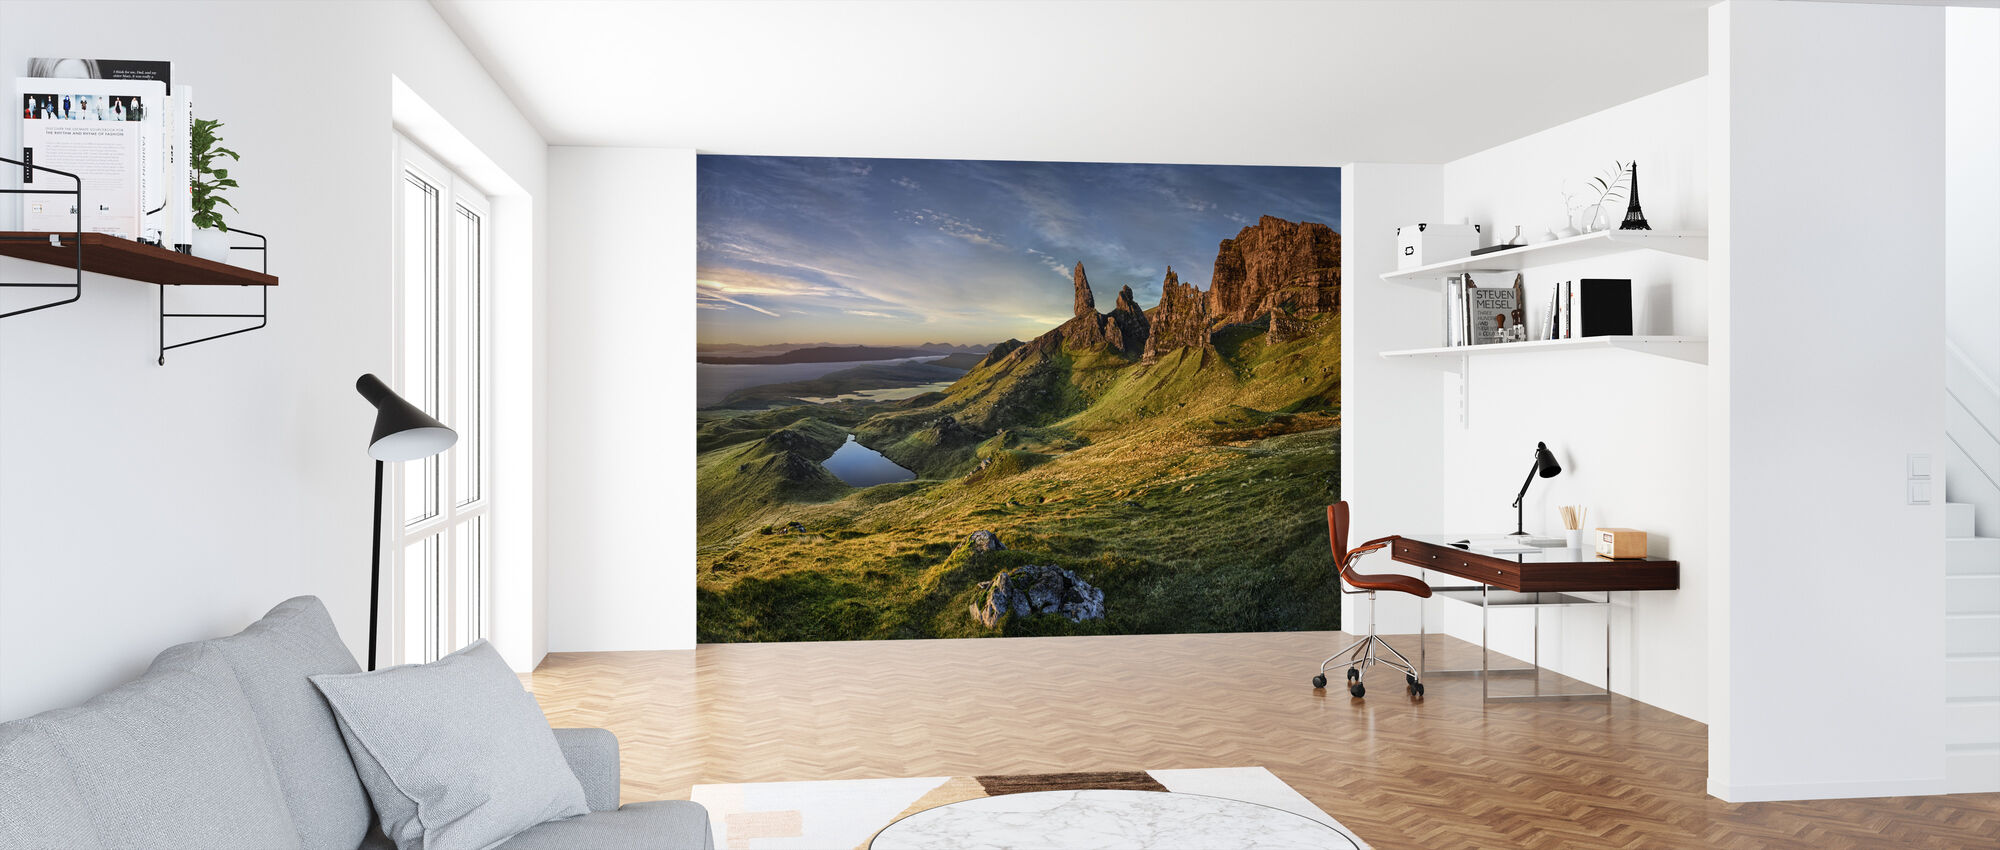 The Old Man of Storr - Wallpaper - Office